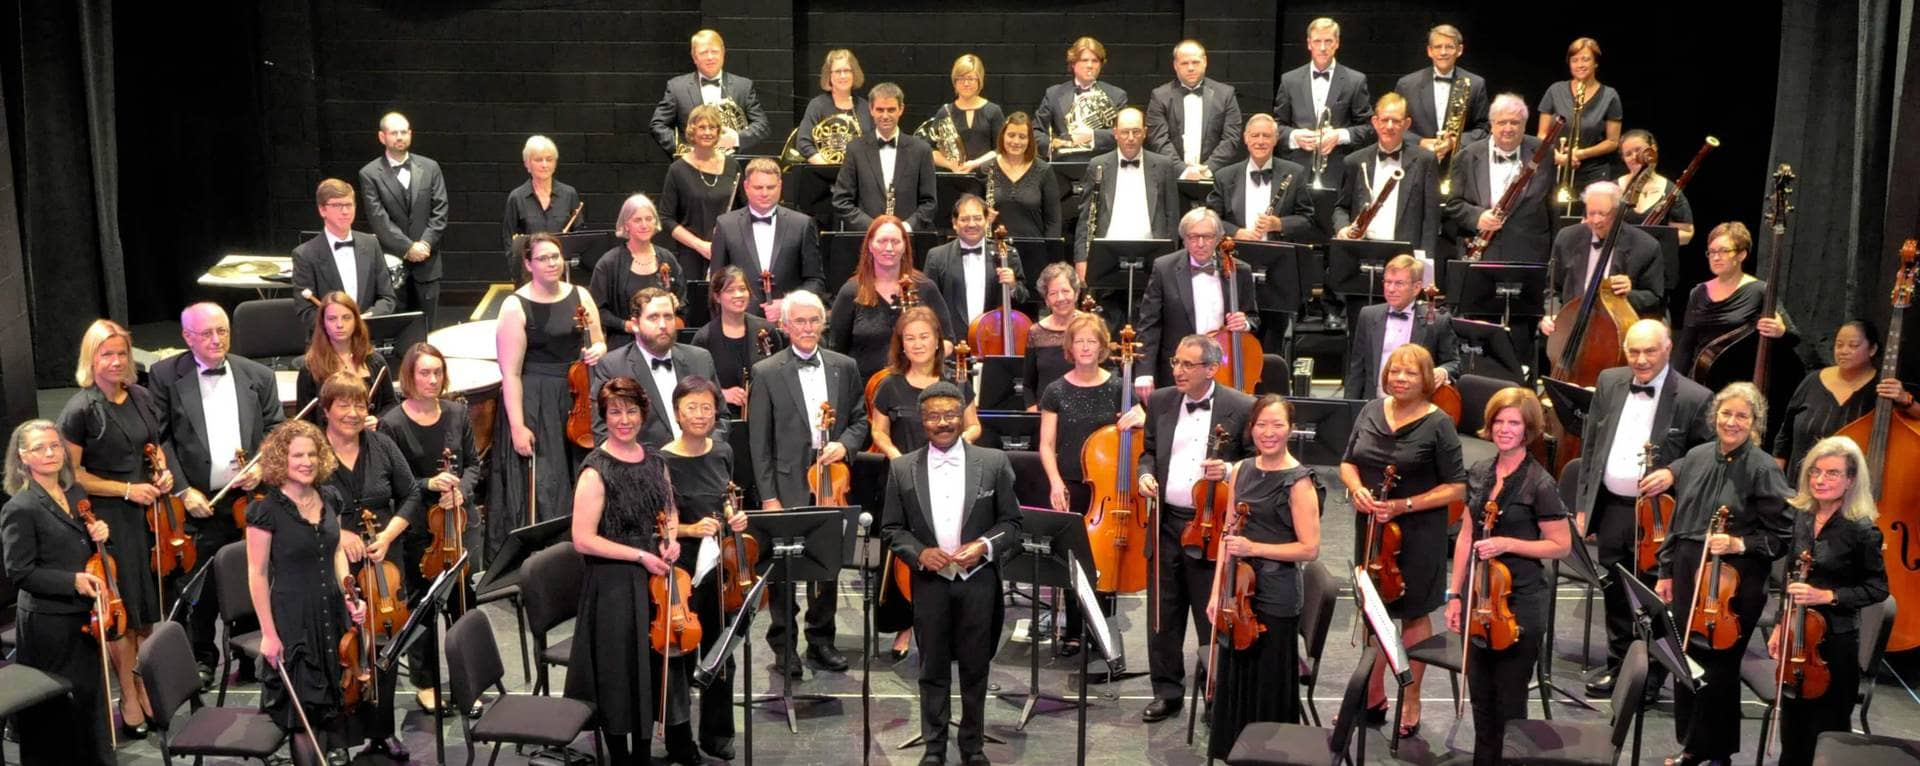 McLean Symphony | Who We Are